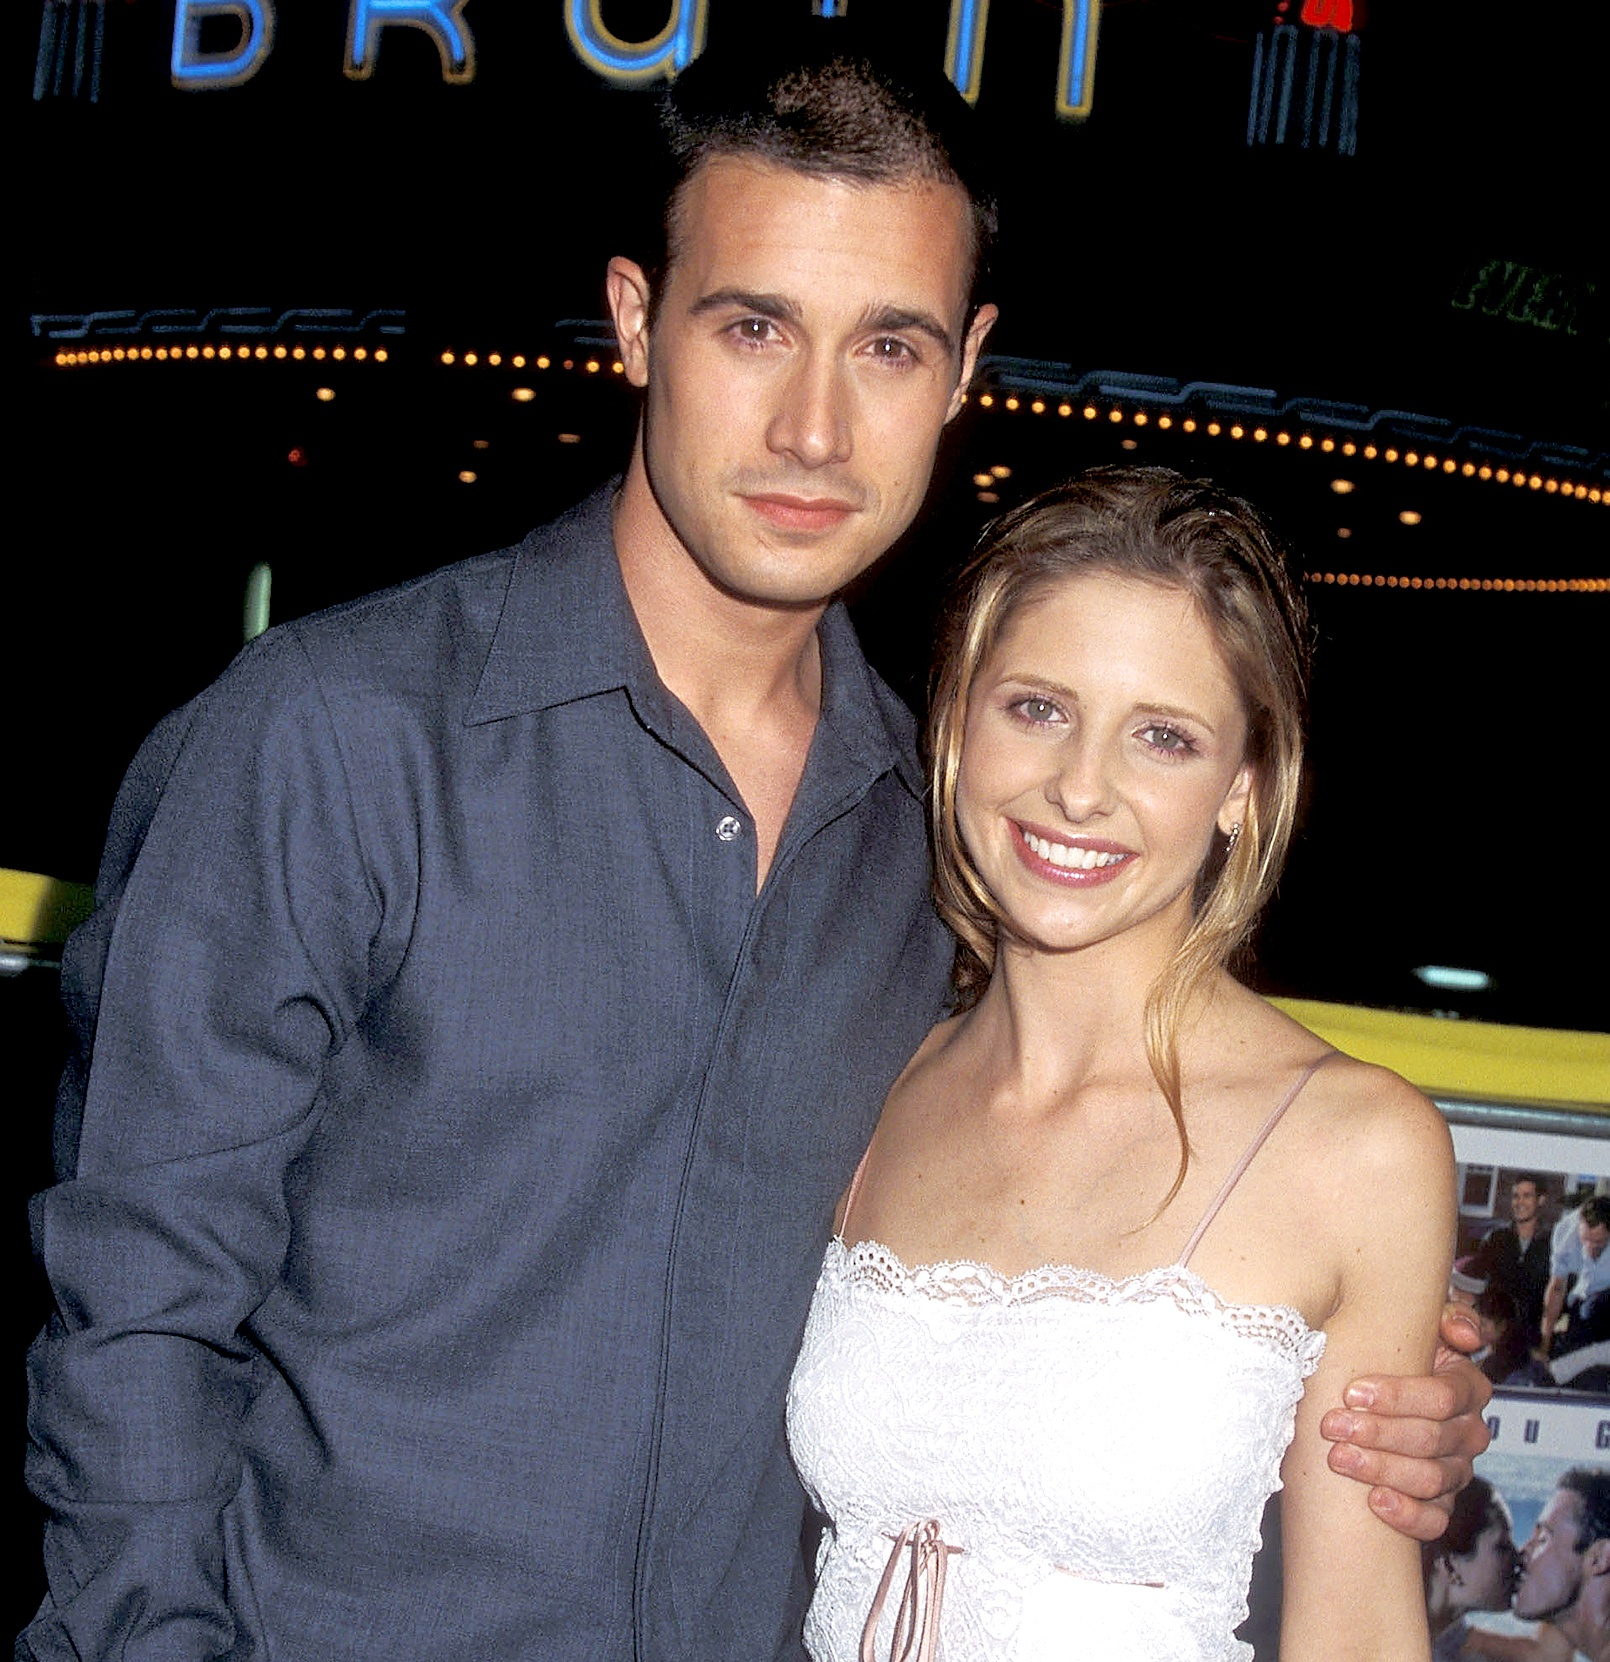 sarah michelle gellar and freddie prinze jr 29bc4ad4 e196 4064 b4bc 1ac8689adae5 27 Things You Didn't Know About The Spider-Man Films